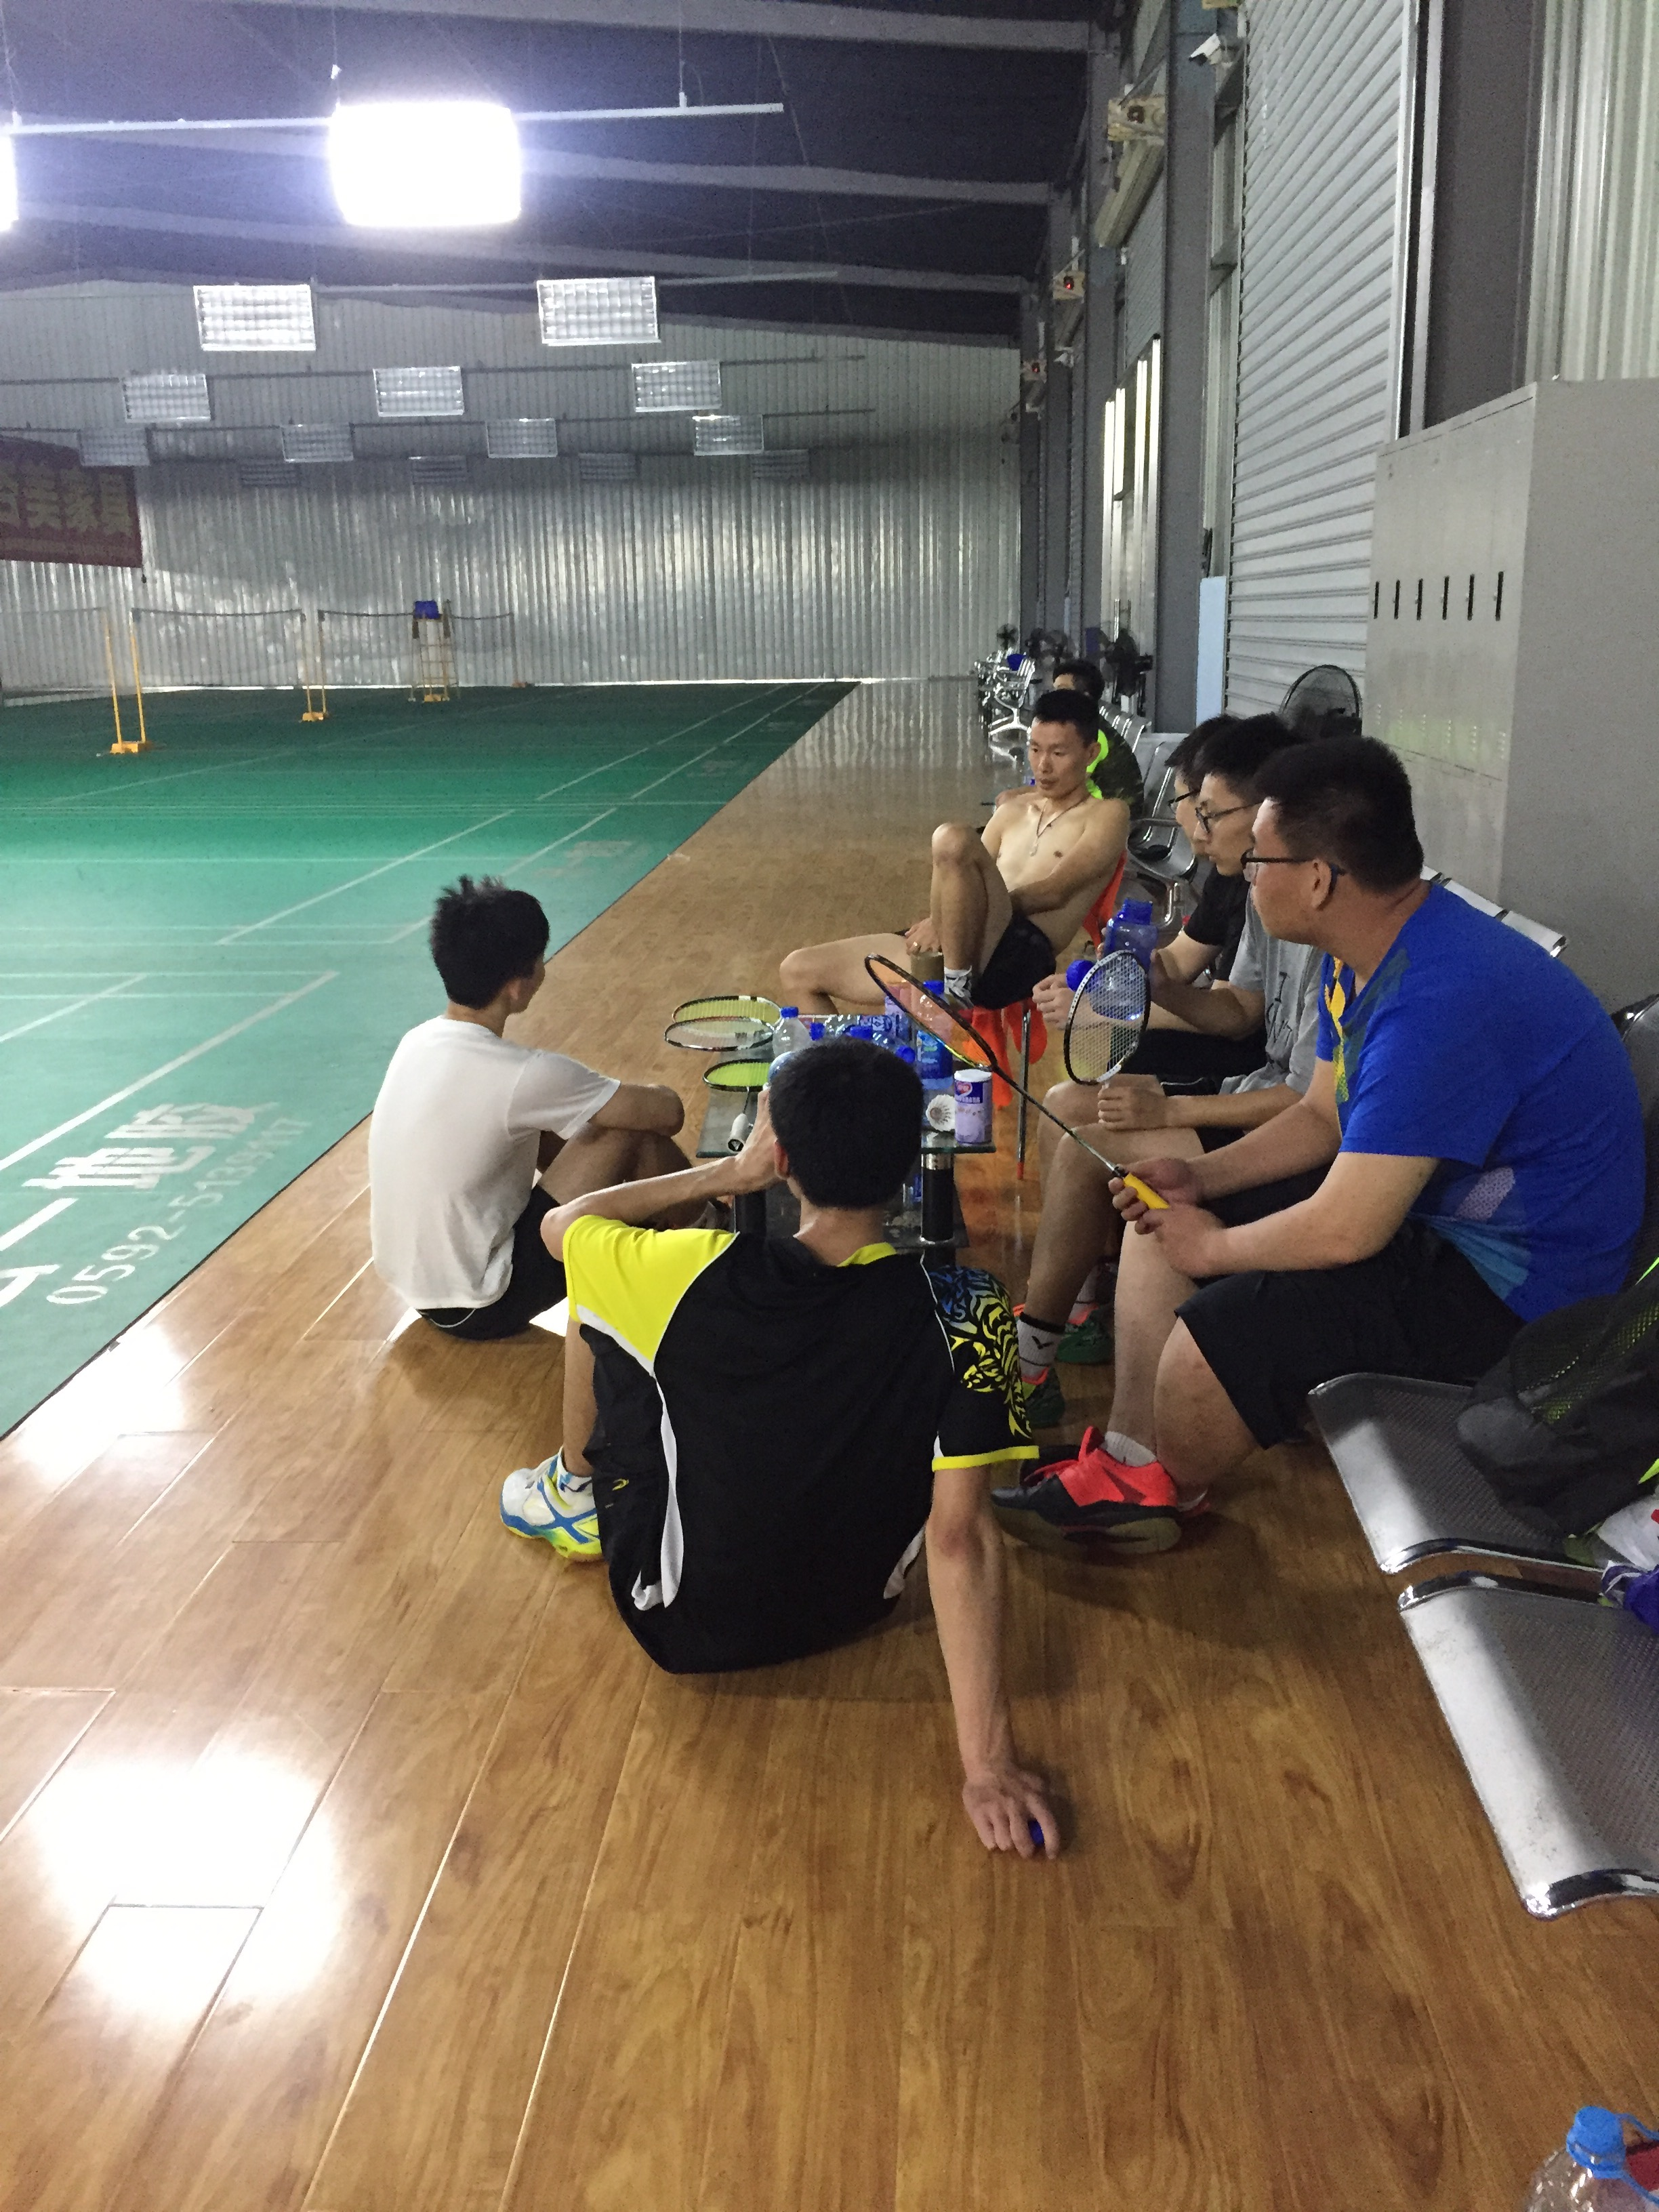 I caught a bunch of younger players sitting around my coach listening to him talk about badminton. I couldn't help but think it was like a master and his disciples.